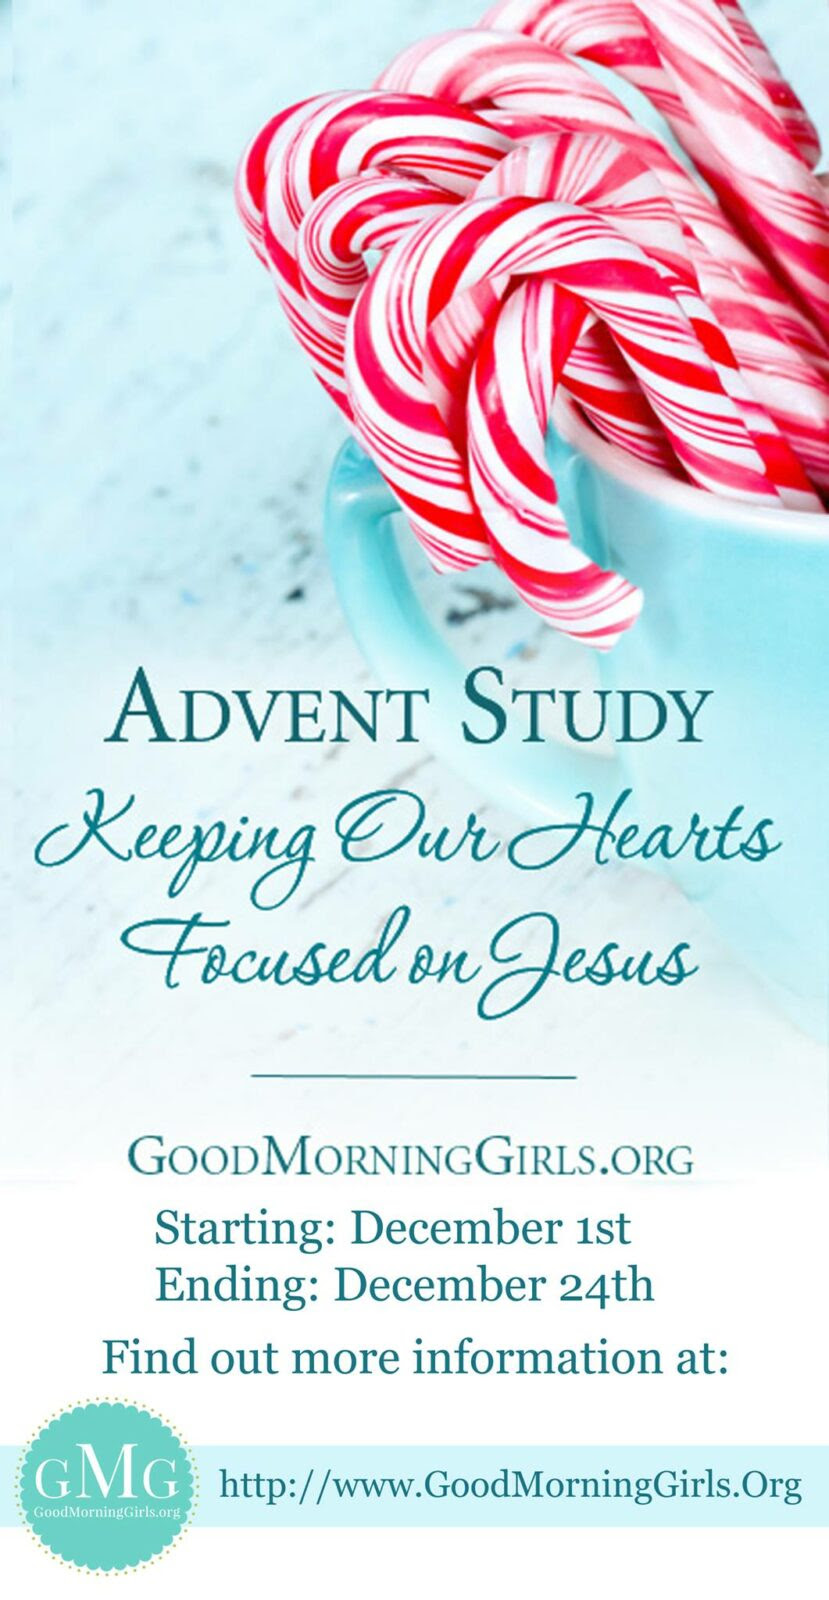 Let It Snow and an Advent Bible Study - Women Living Well